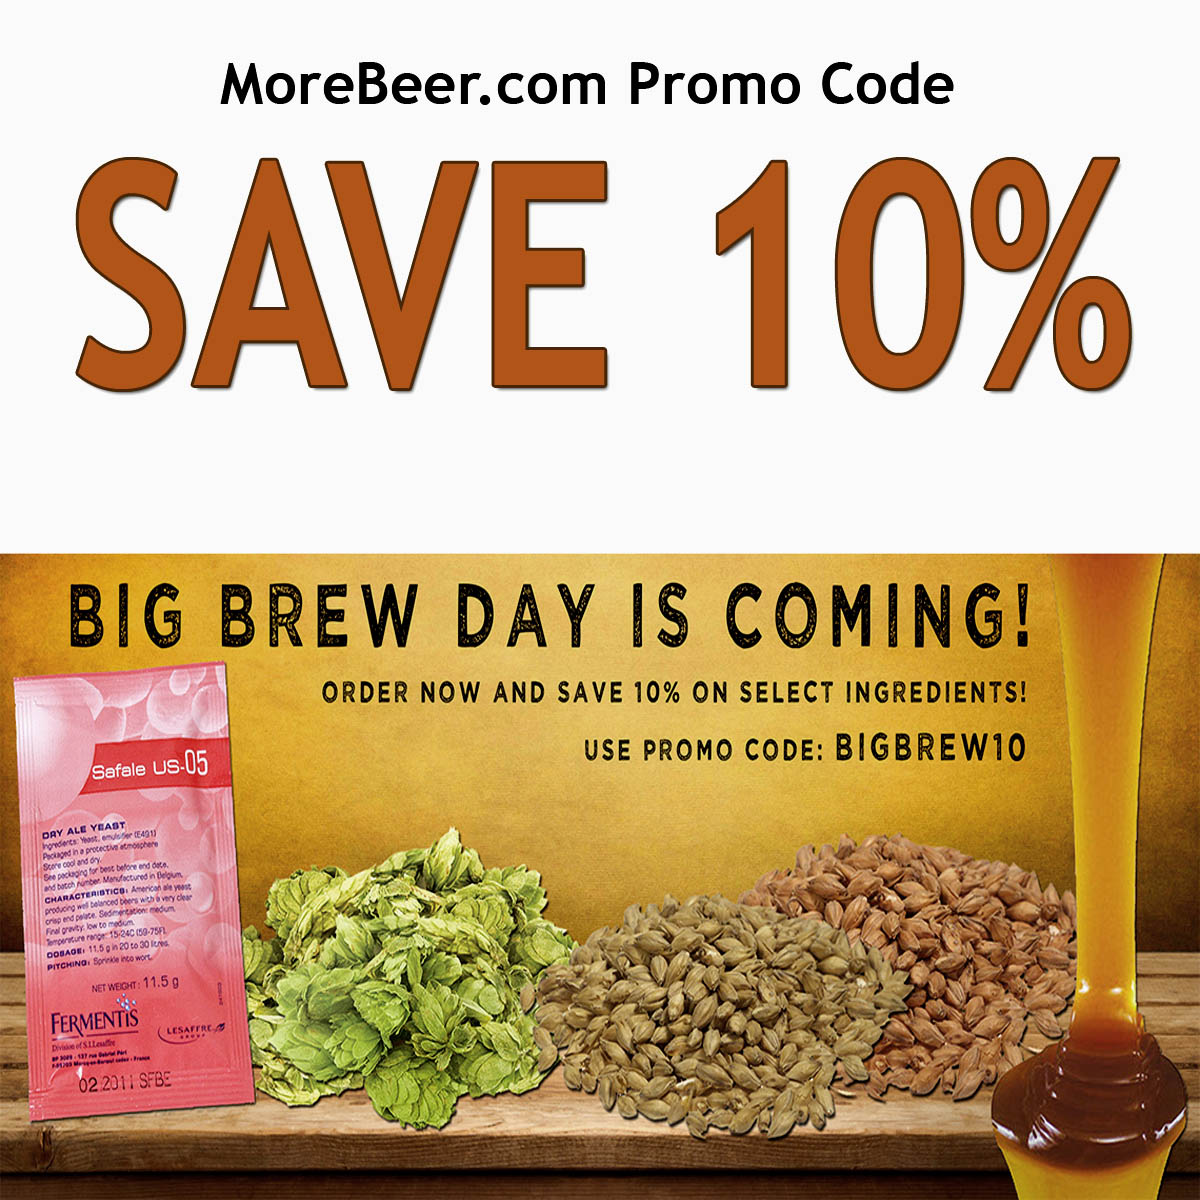 Save 10% On Select Home Brewing Ingredients With This MoreBeer.com Promo Code Coupon Code